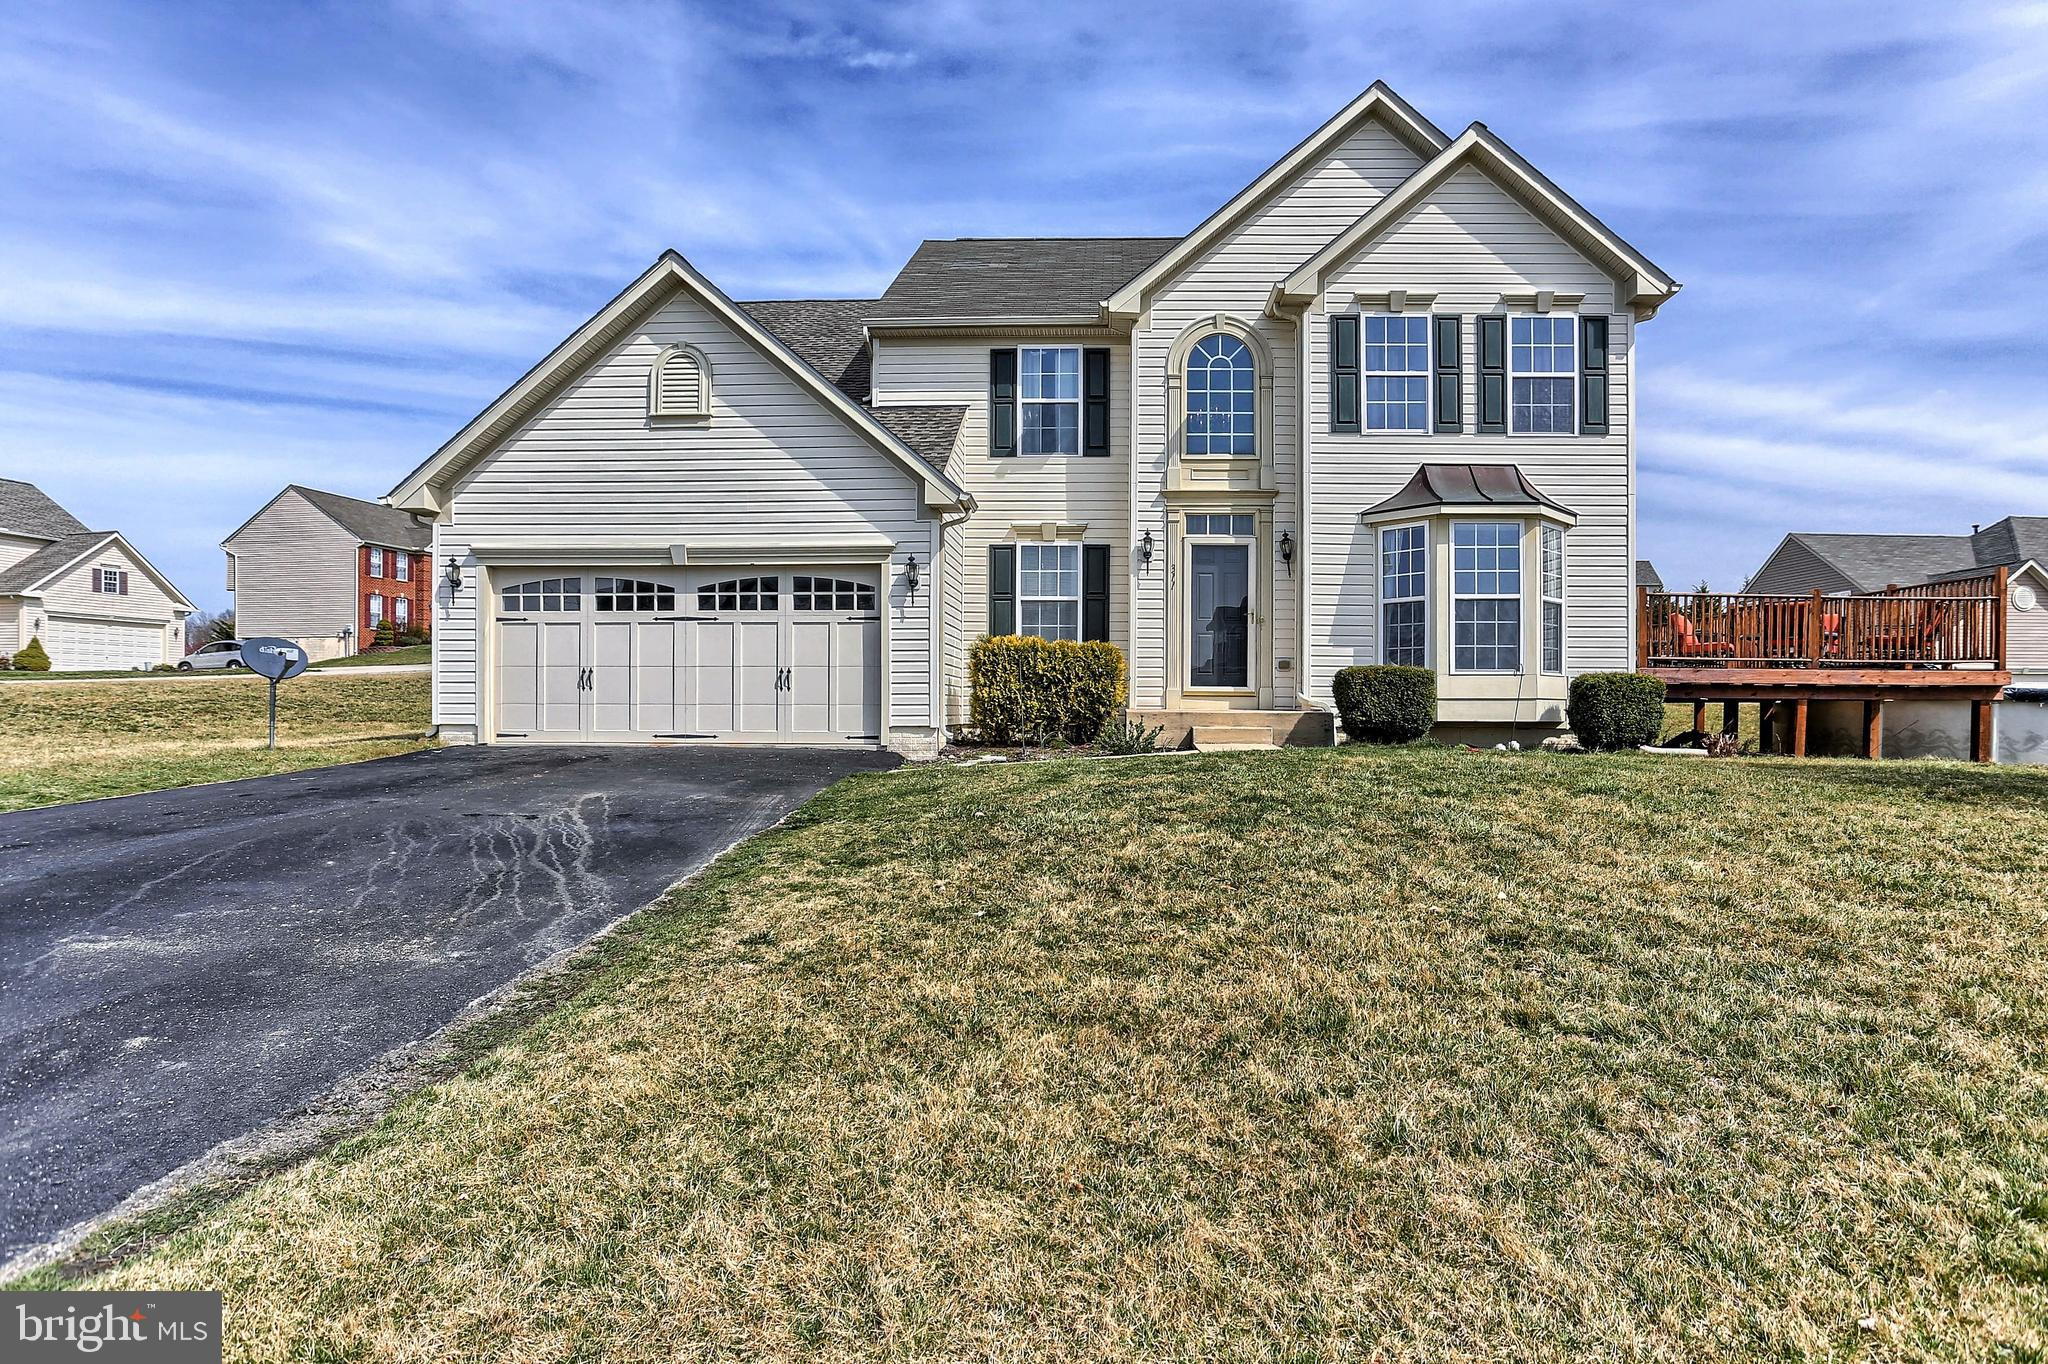 311 COURTNEY COURT, SPRING GROVE, PA 17362